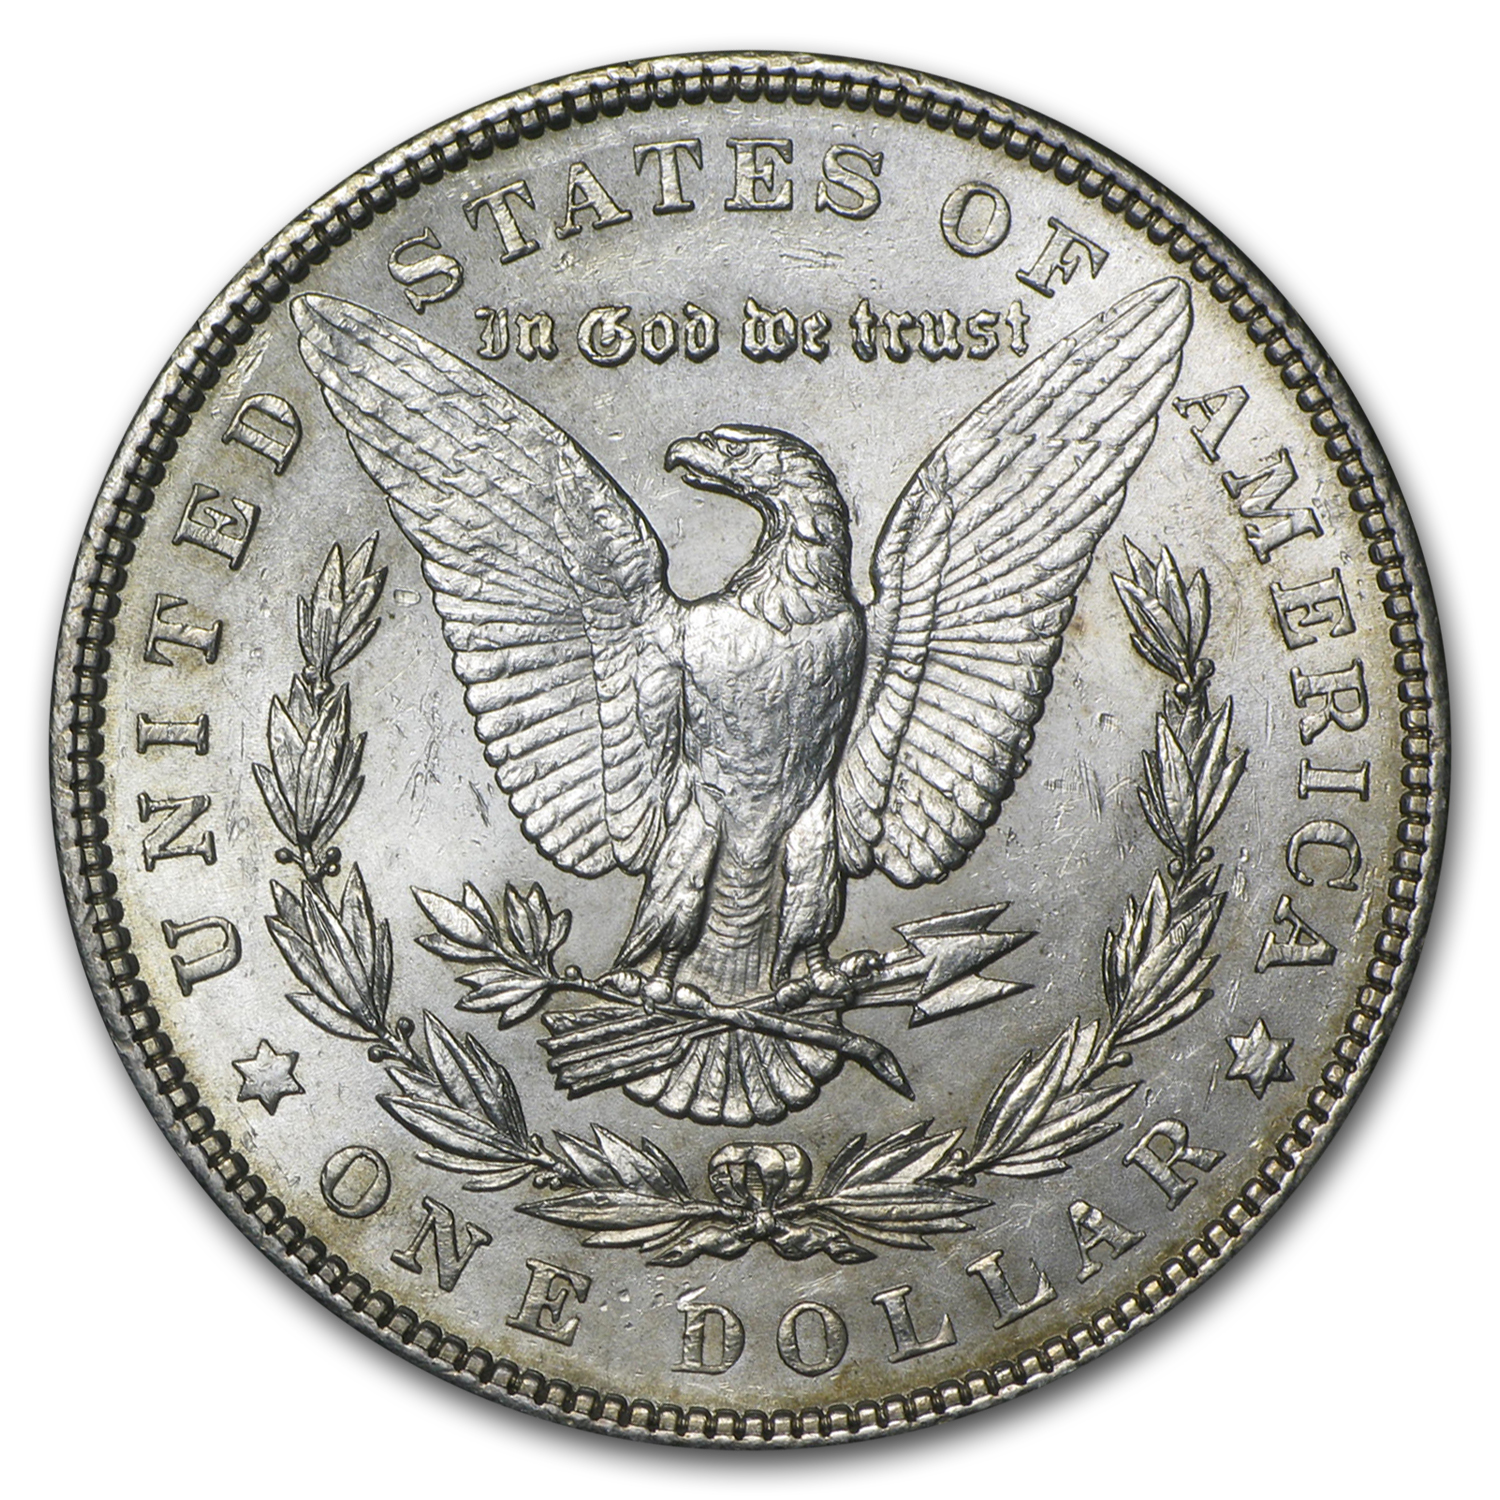 1904 Morgan Dollar - Almost Uncirculated-58